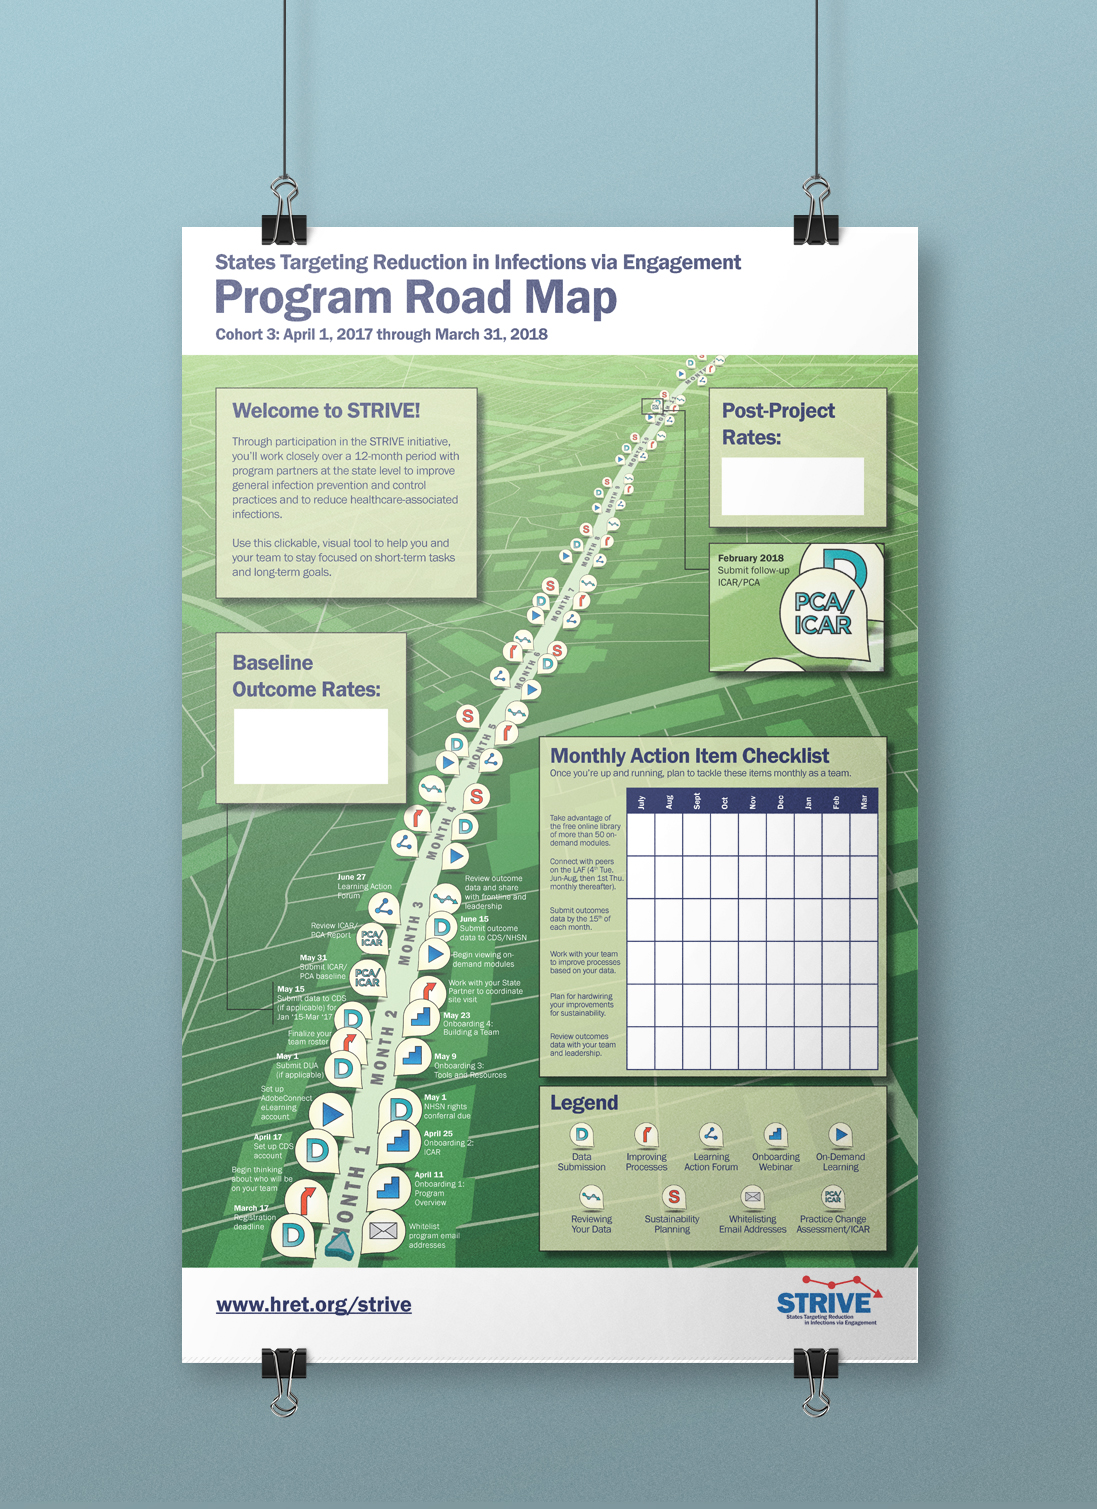 STRIVE Program Road Map